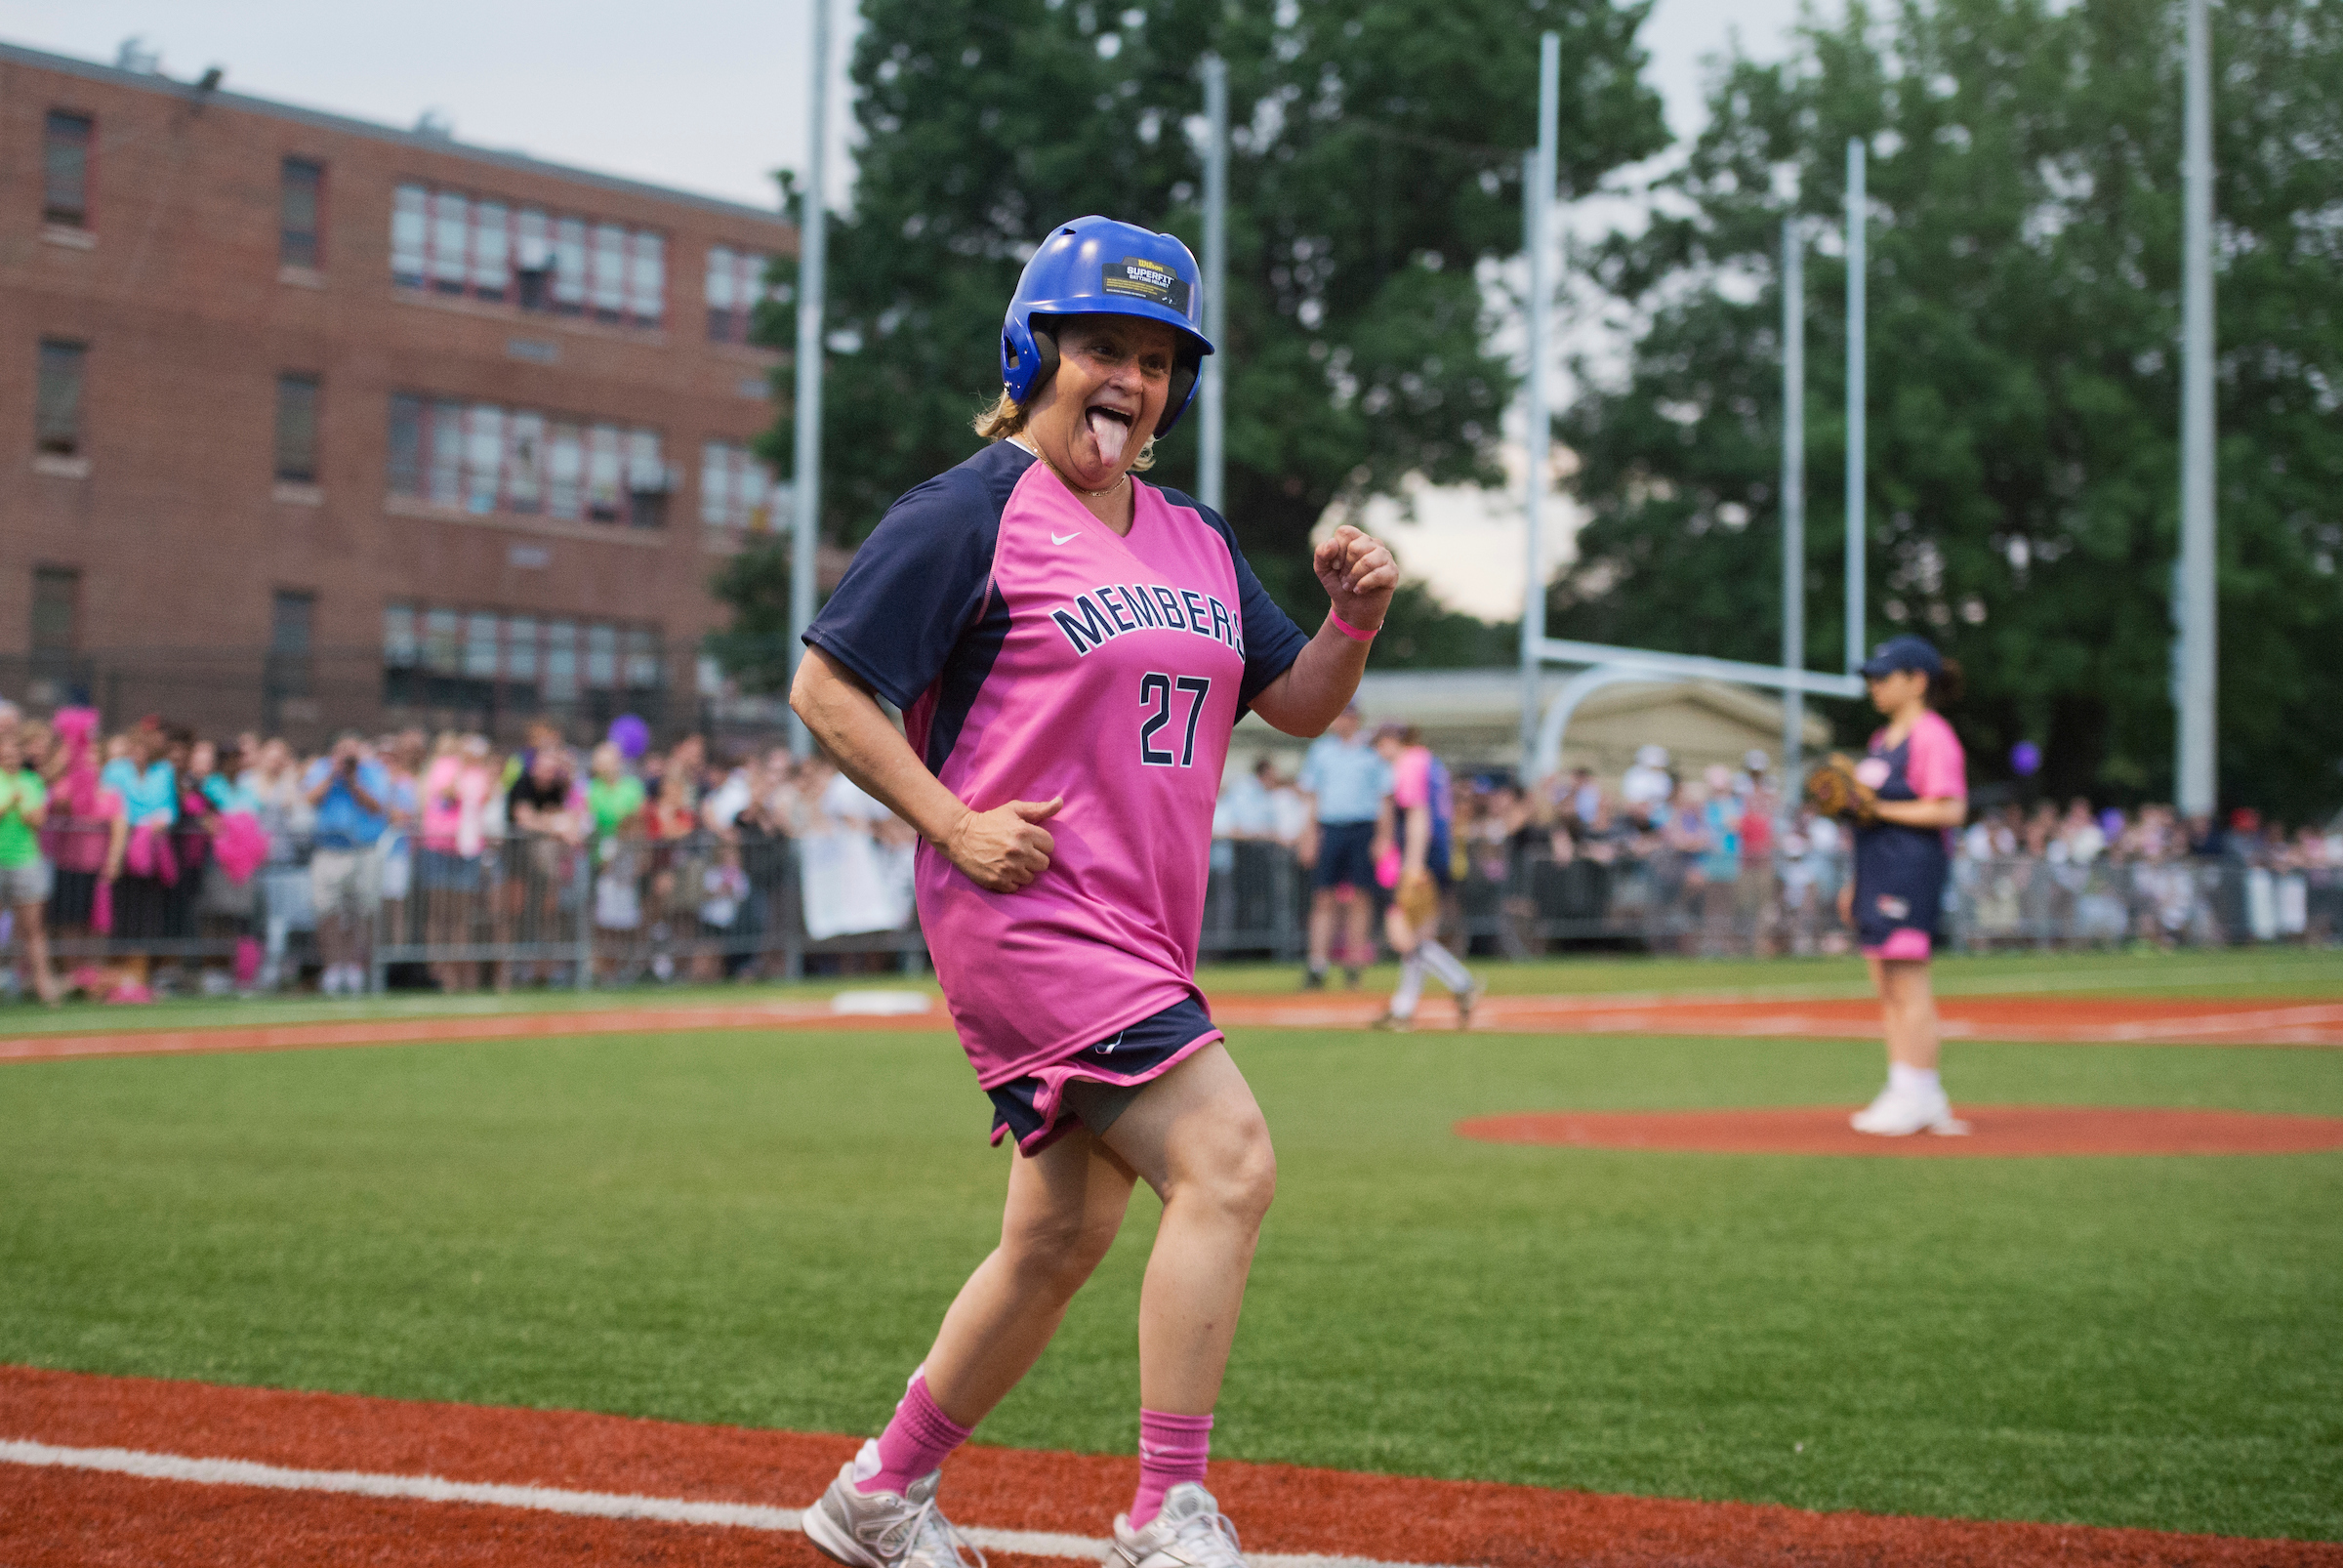 UNITED STATES - JUNE 26: Rep. Ileana Ros-Lehtinen, R-Fla., plays in the Congressional Women's Softball game that pits Congresswomen against female journalists at Watkins Recreation Center on Capitol Hill. The reporters prevailed in a 11-8 victory. The game benefits the Young Survival Coalition that helps young women with breast cancer. (Photo By Tom Williams/CQ Roll Call)